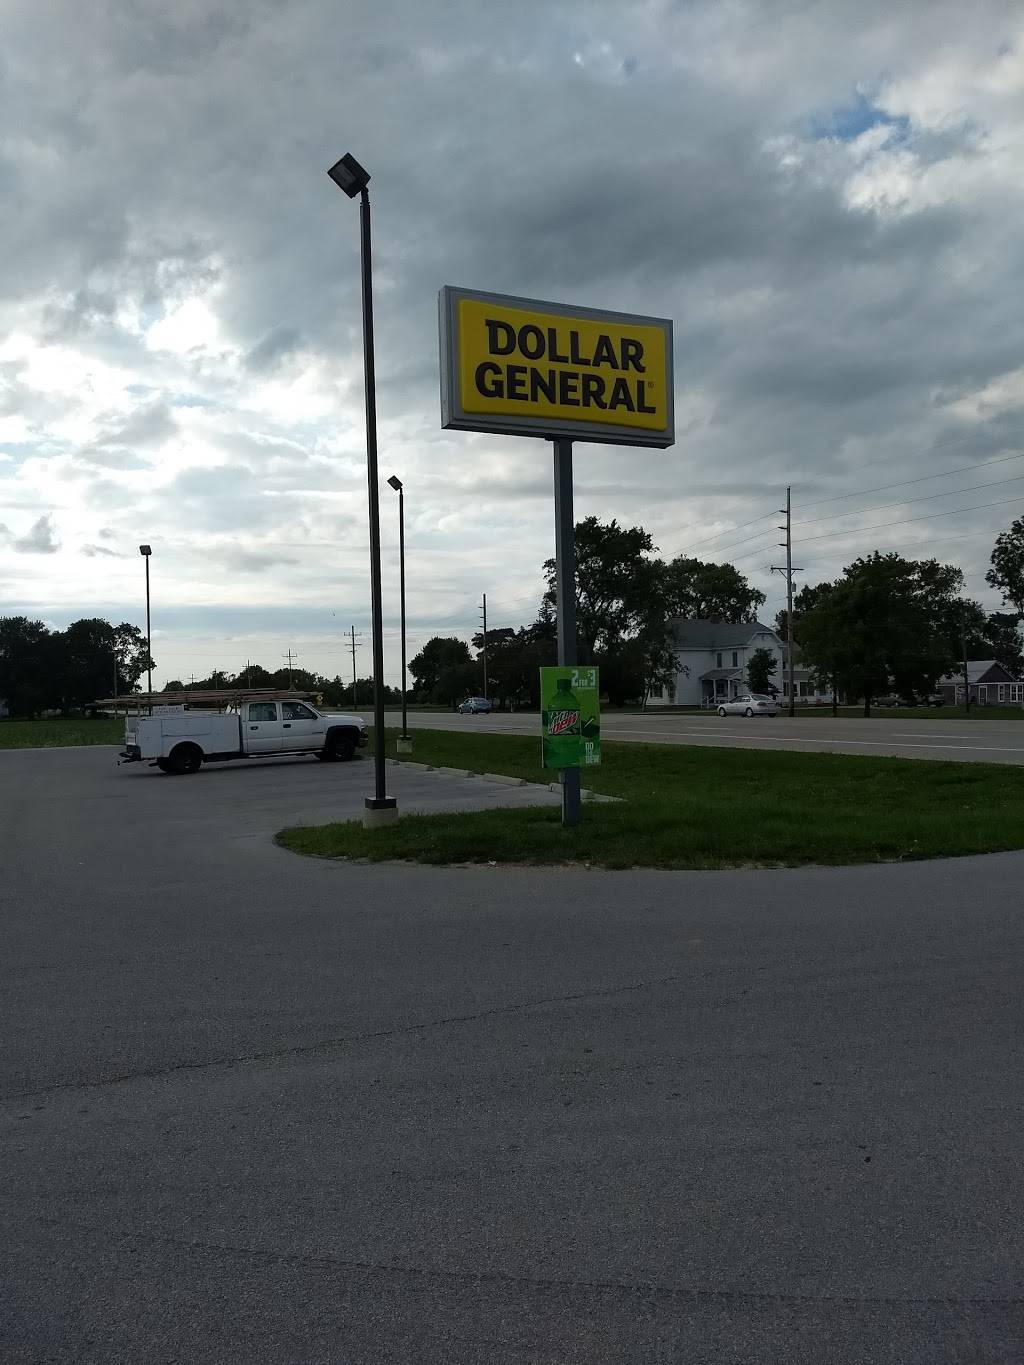 Dollar General - home goods store  | Photo 4 of 6 | Address: 1221 W Main St, Woodville, OH 43469, USA | Phone: (419) 862-7308